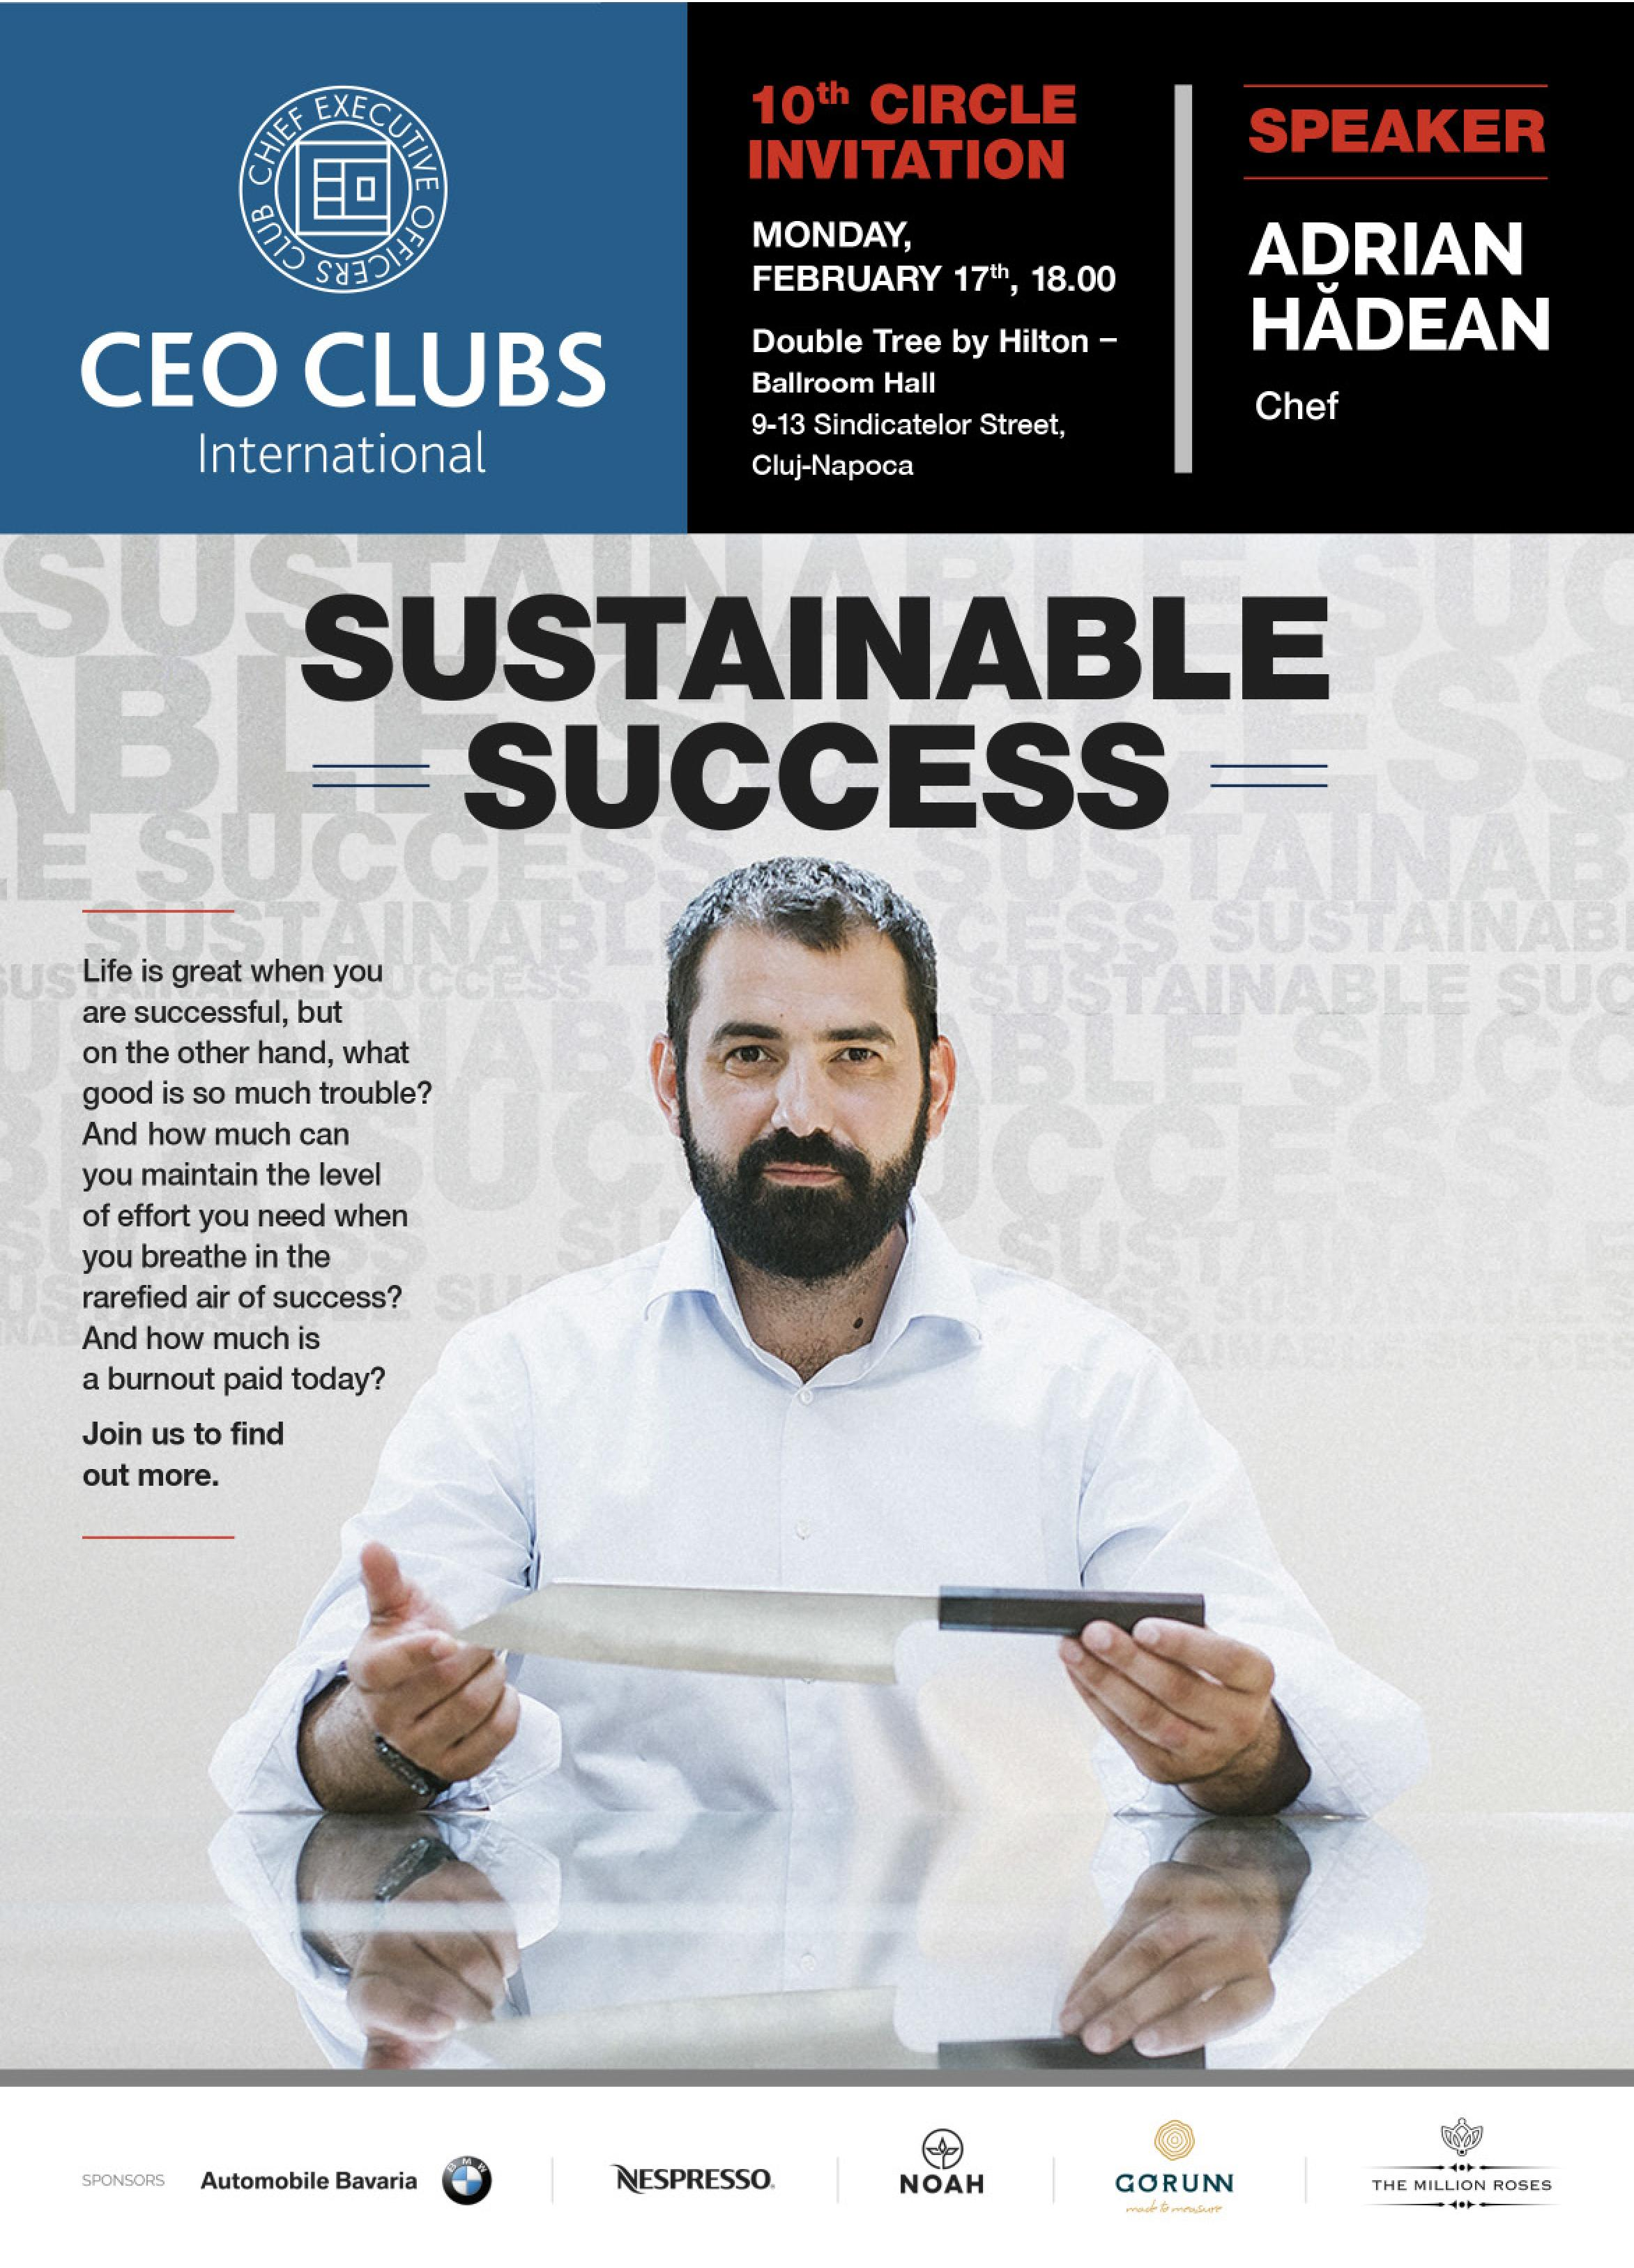 10th Circle: Sustainable Success